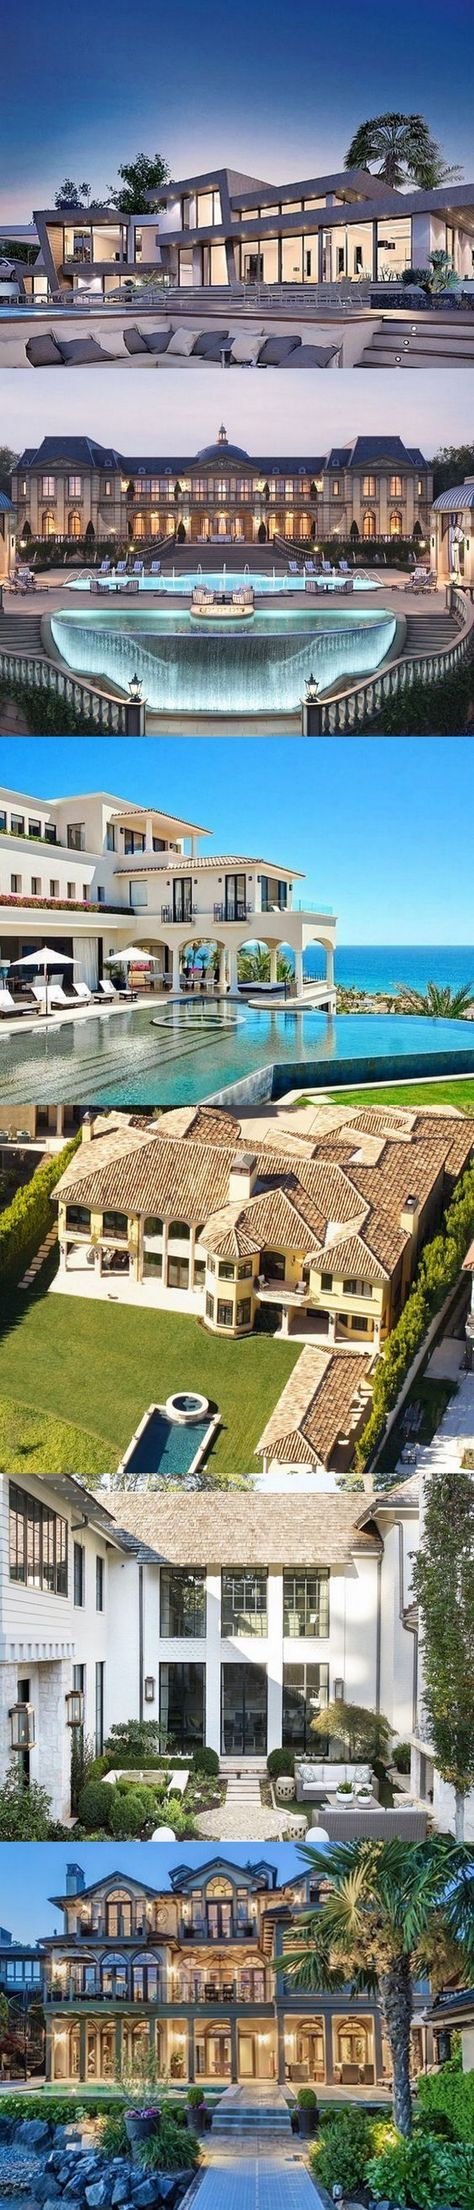 147 best Dream houses images on Pinterest | House beautiful, Luxury ...